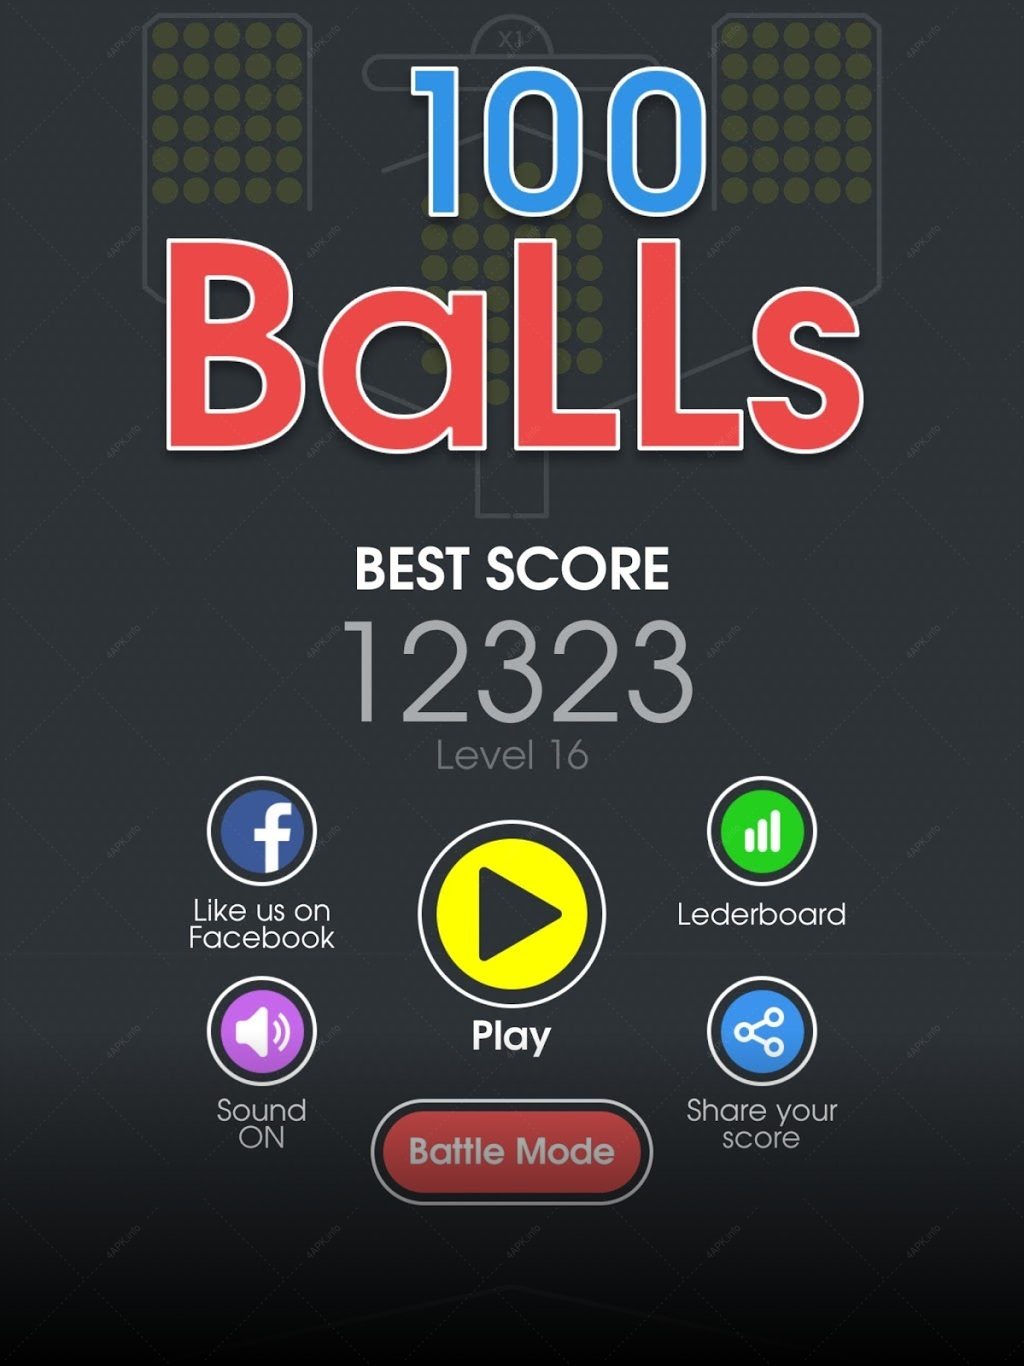 100 Balls - Tap to Drop the Color Ball Game screenshot